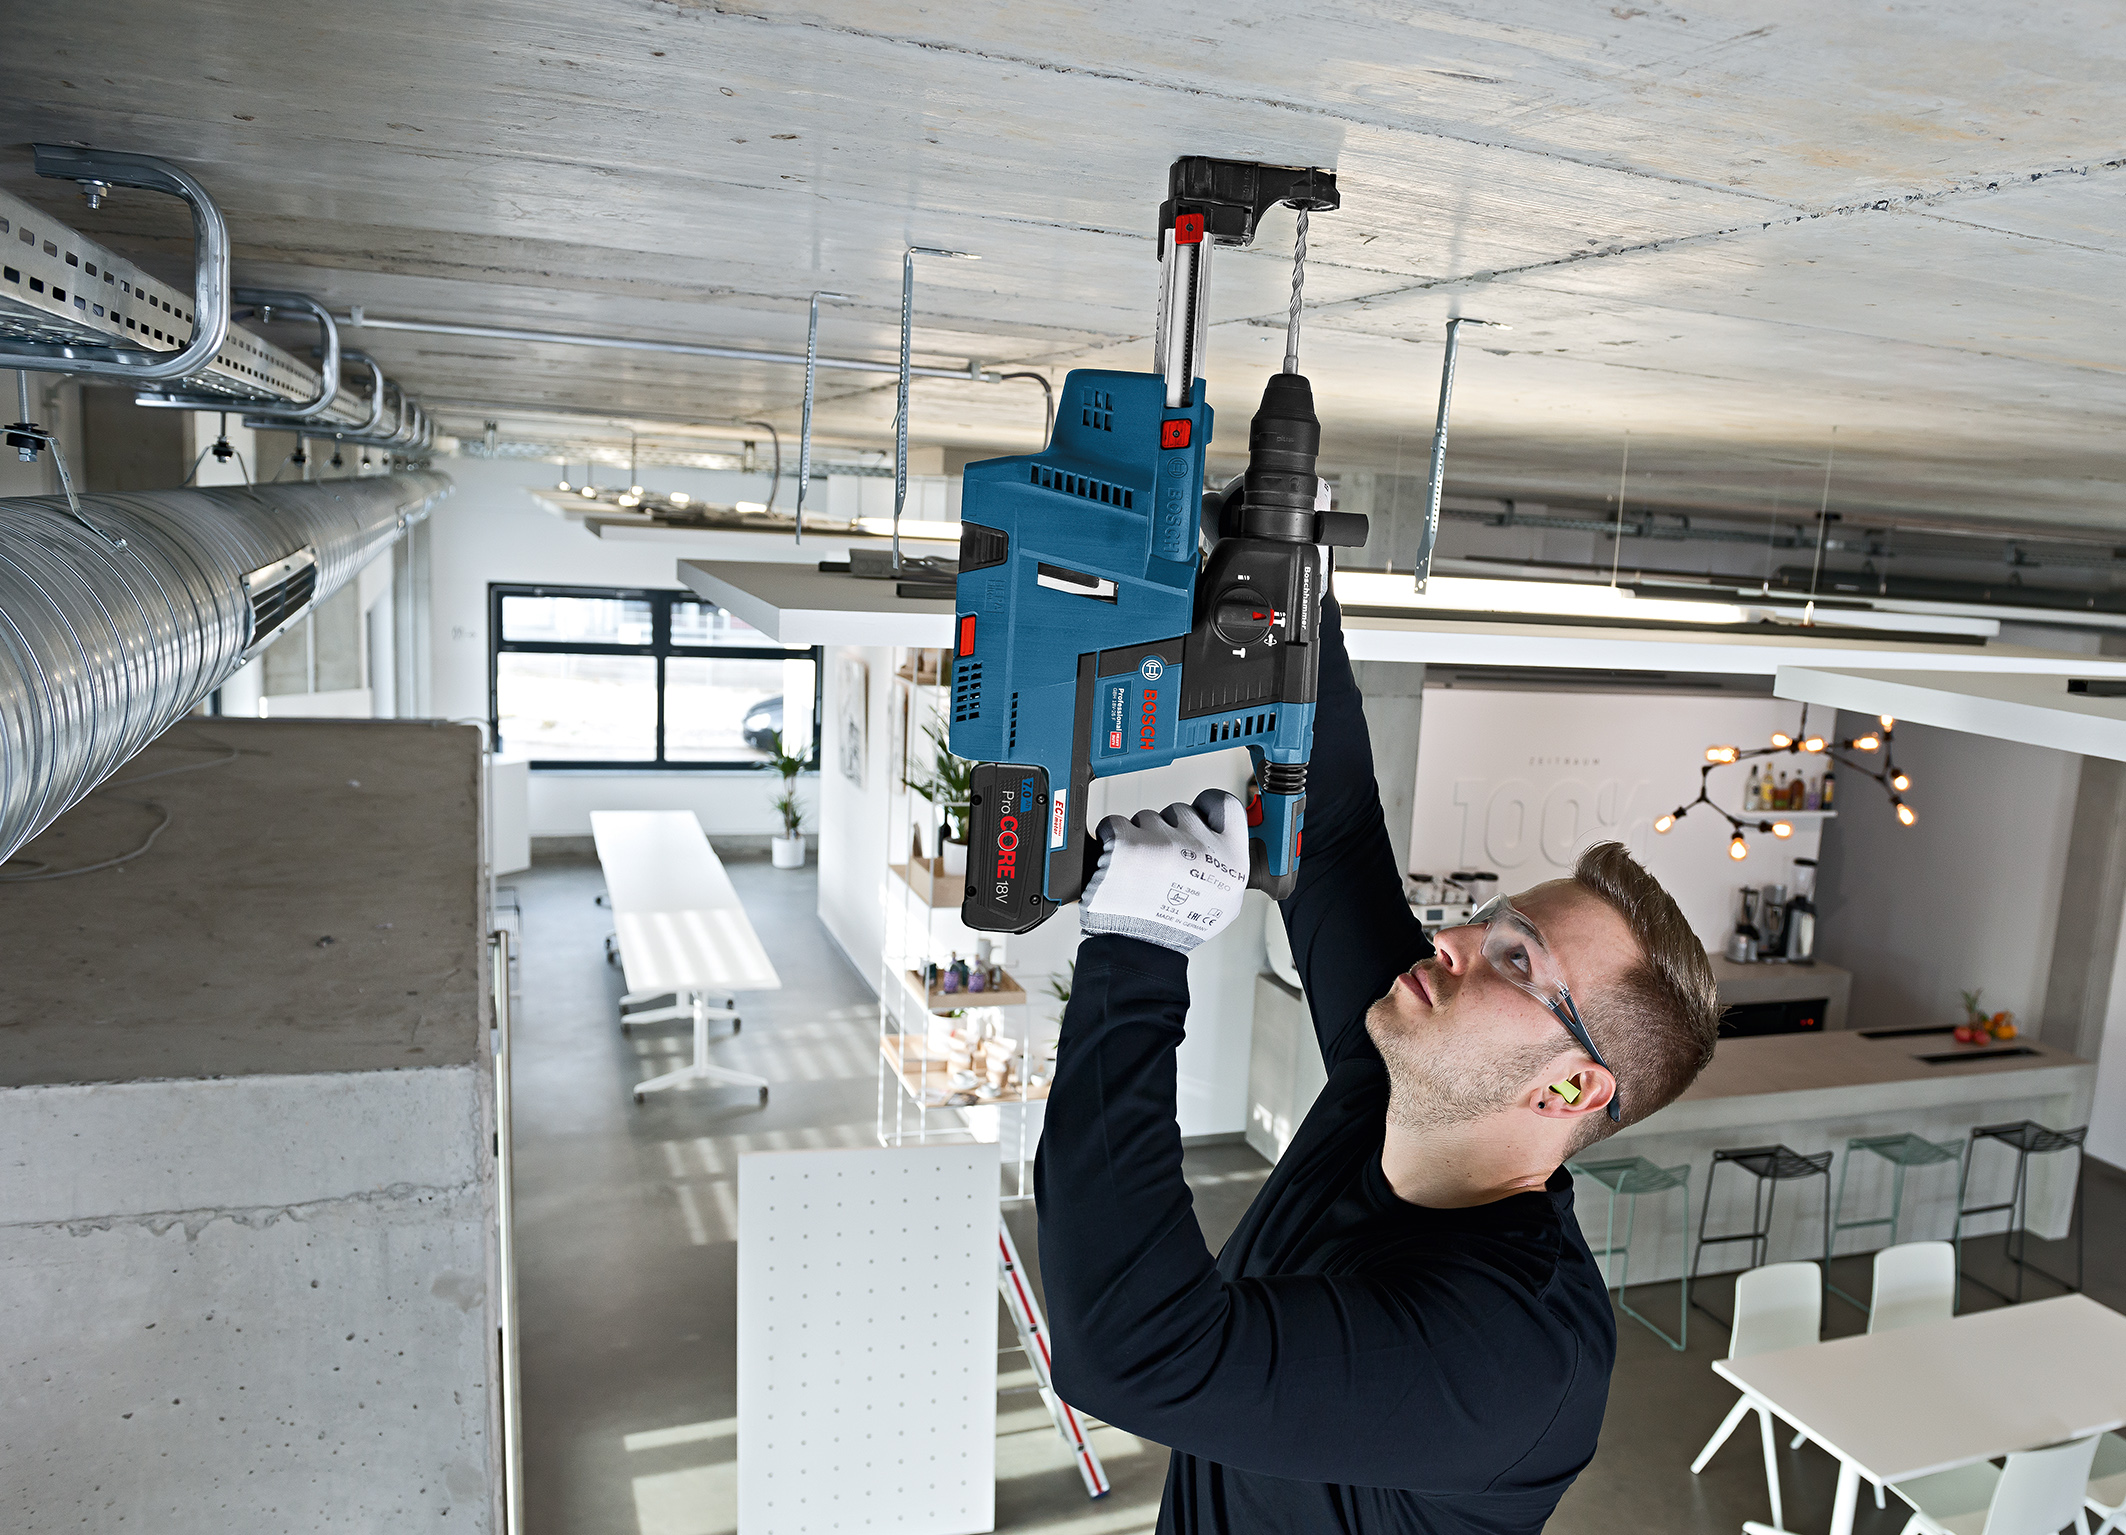 Productive working with the GBH 18V-26 (F) Professional:  occupational health and safety from Bosch for pros